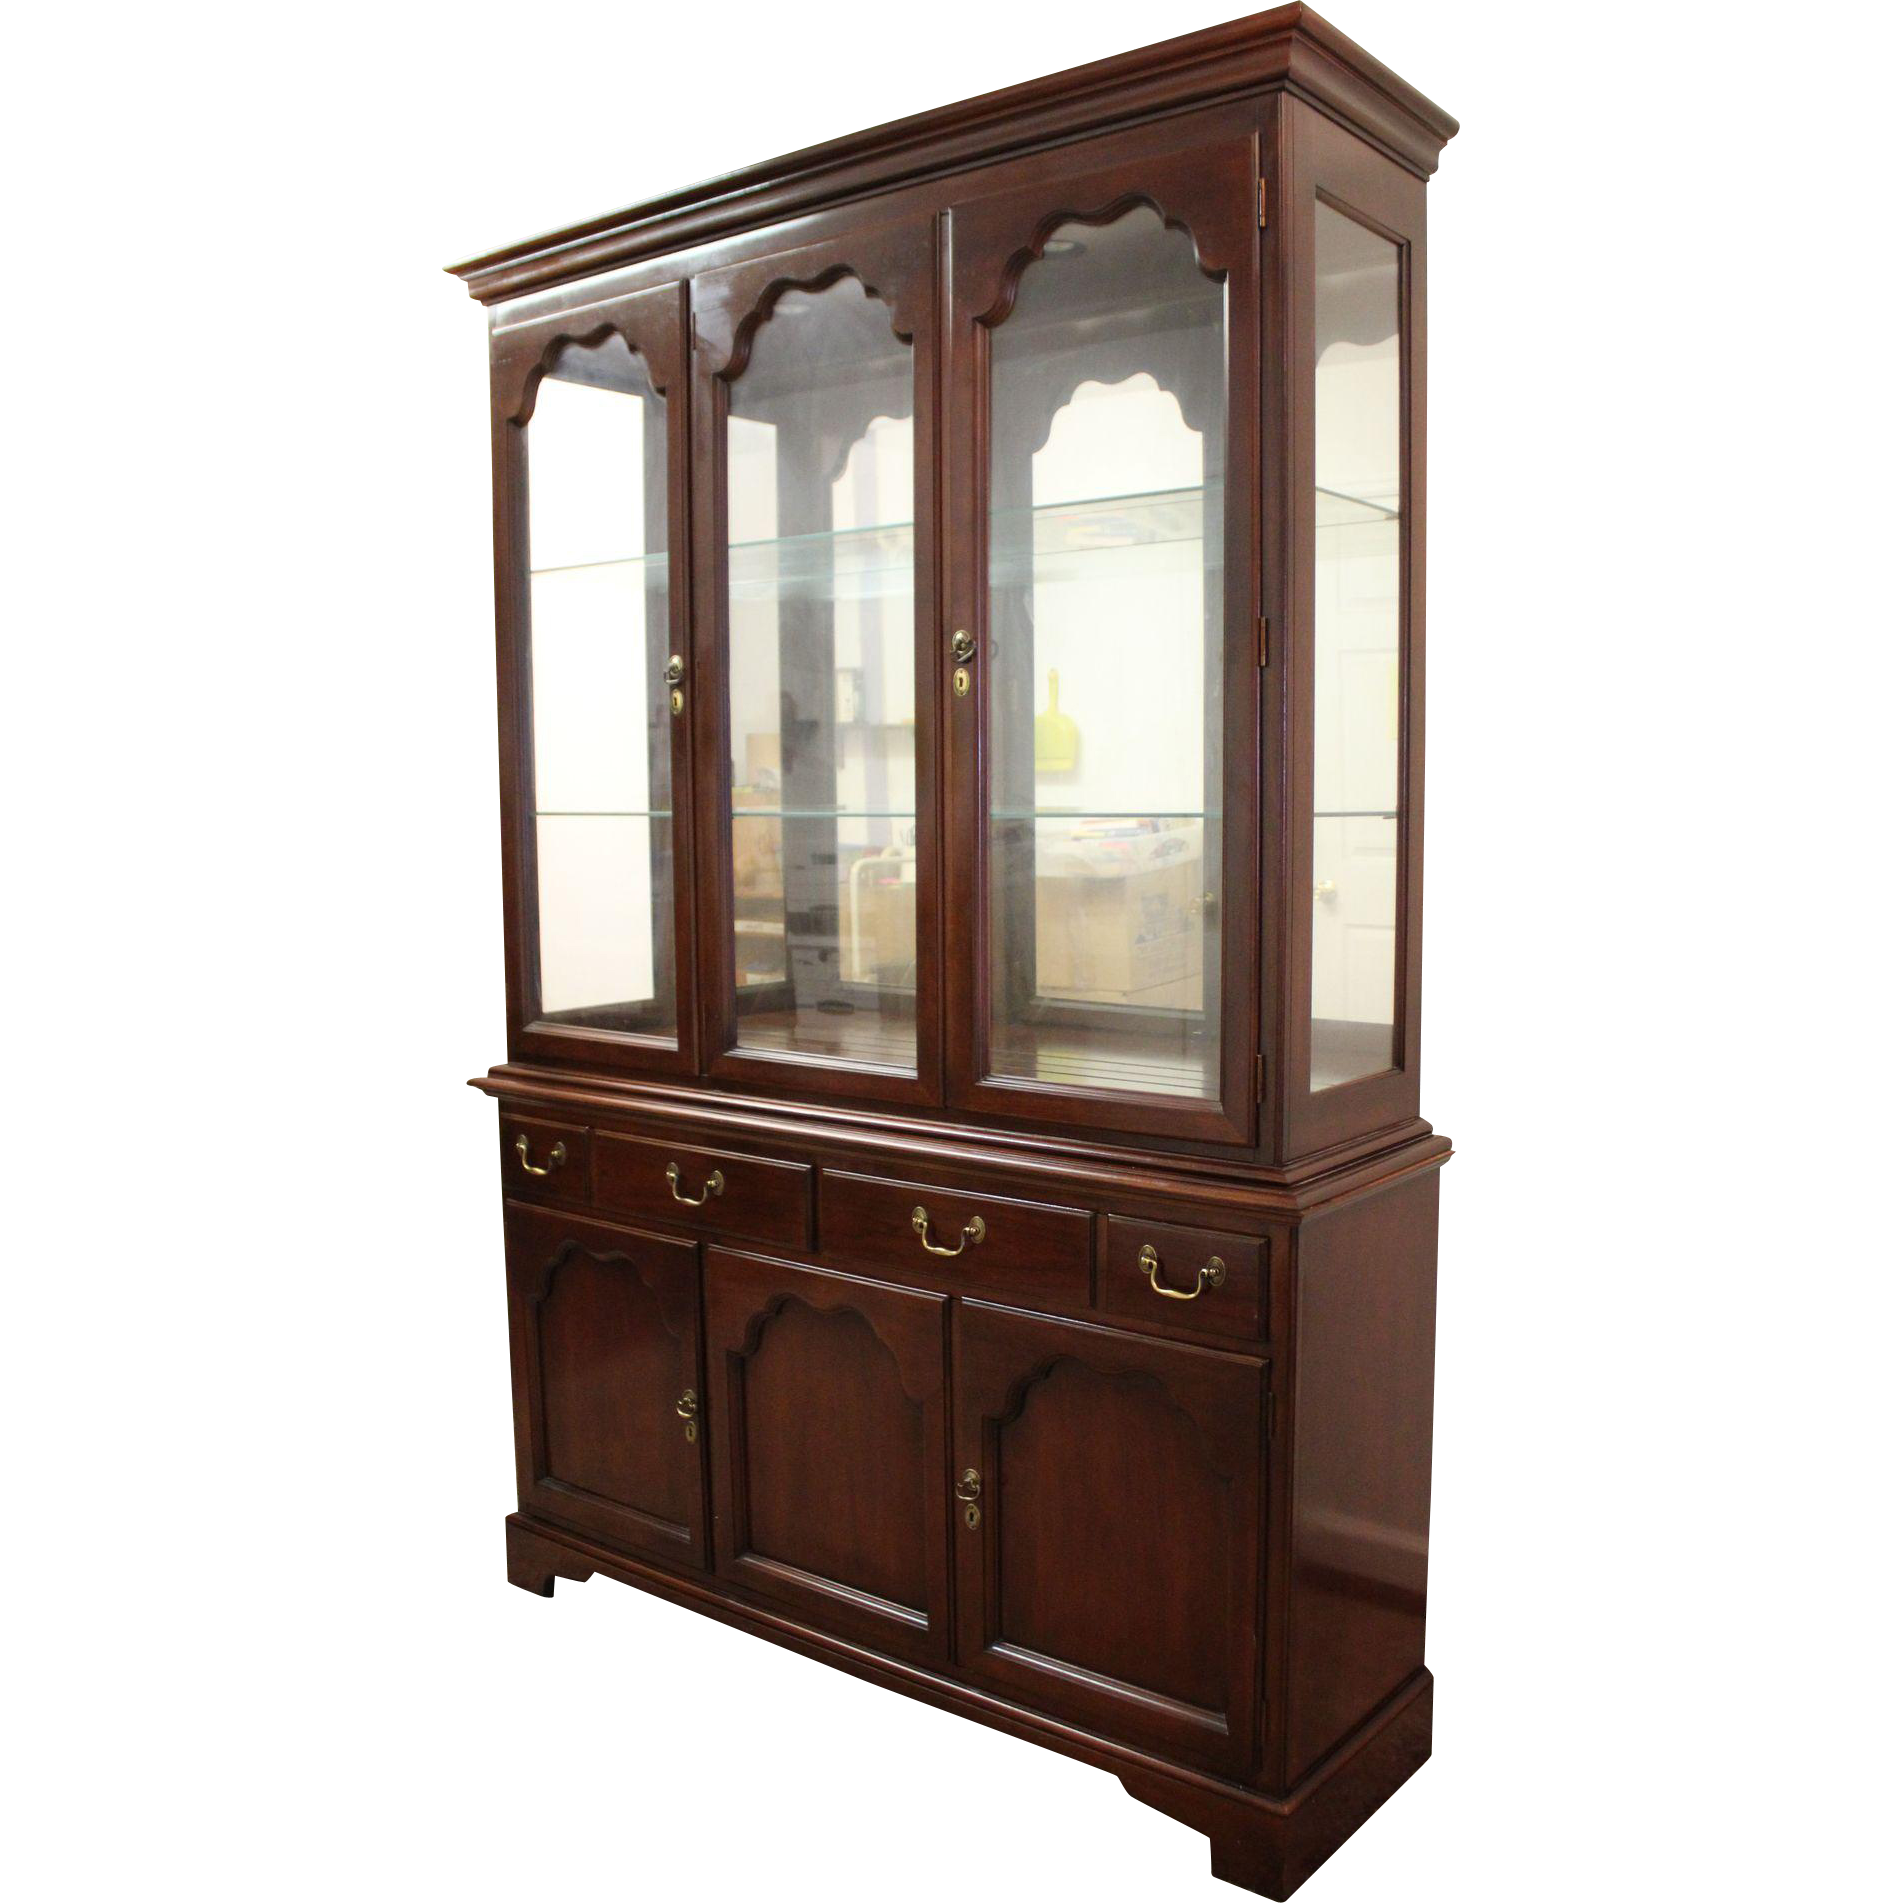 Drexel heritage cherry china cabinet mf cabinets for China cabinet